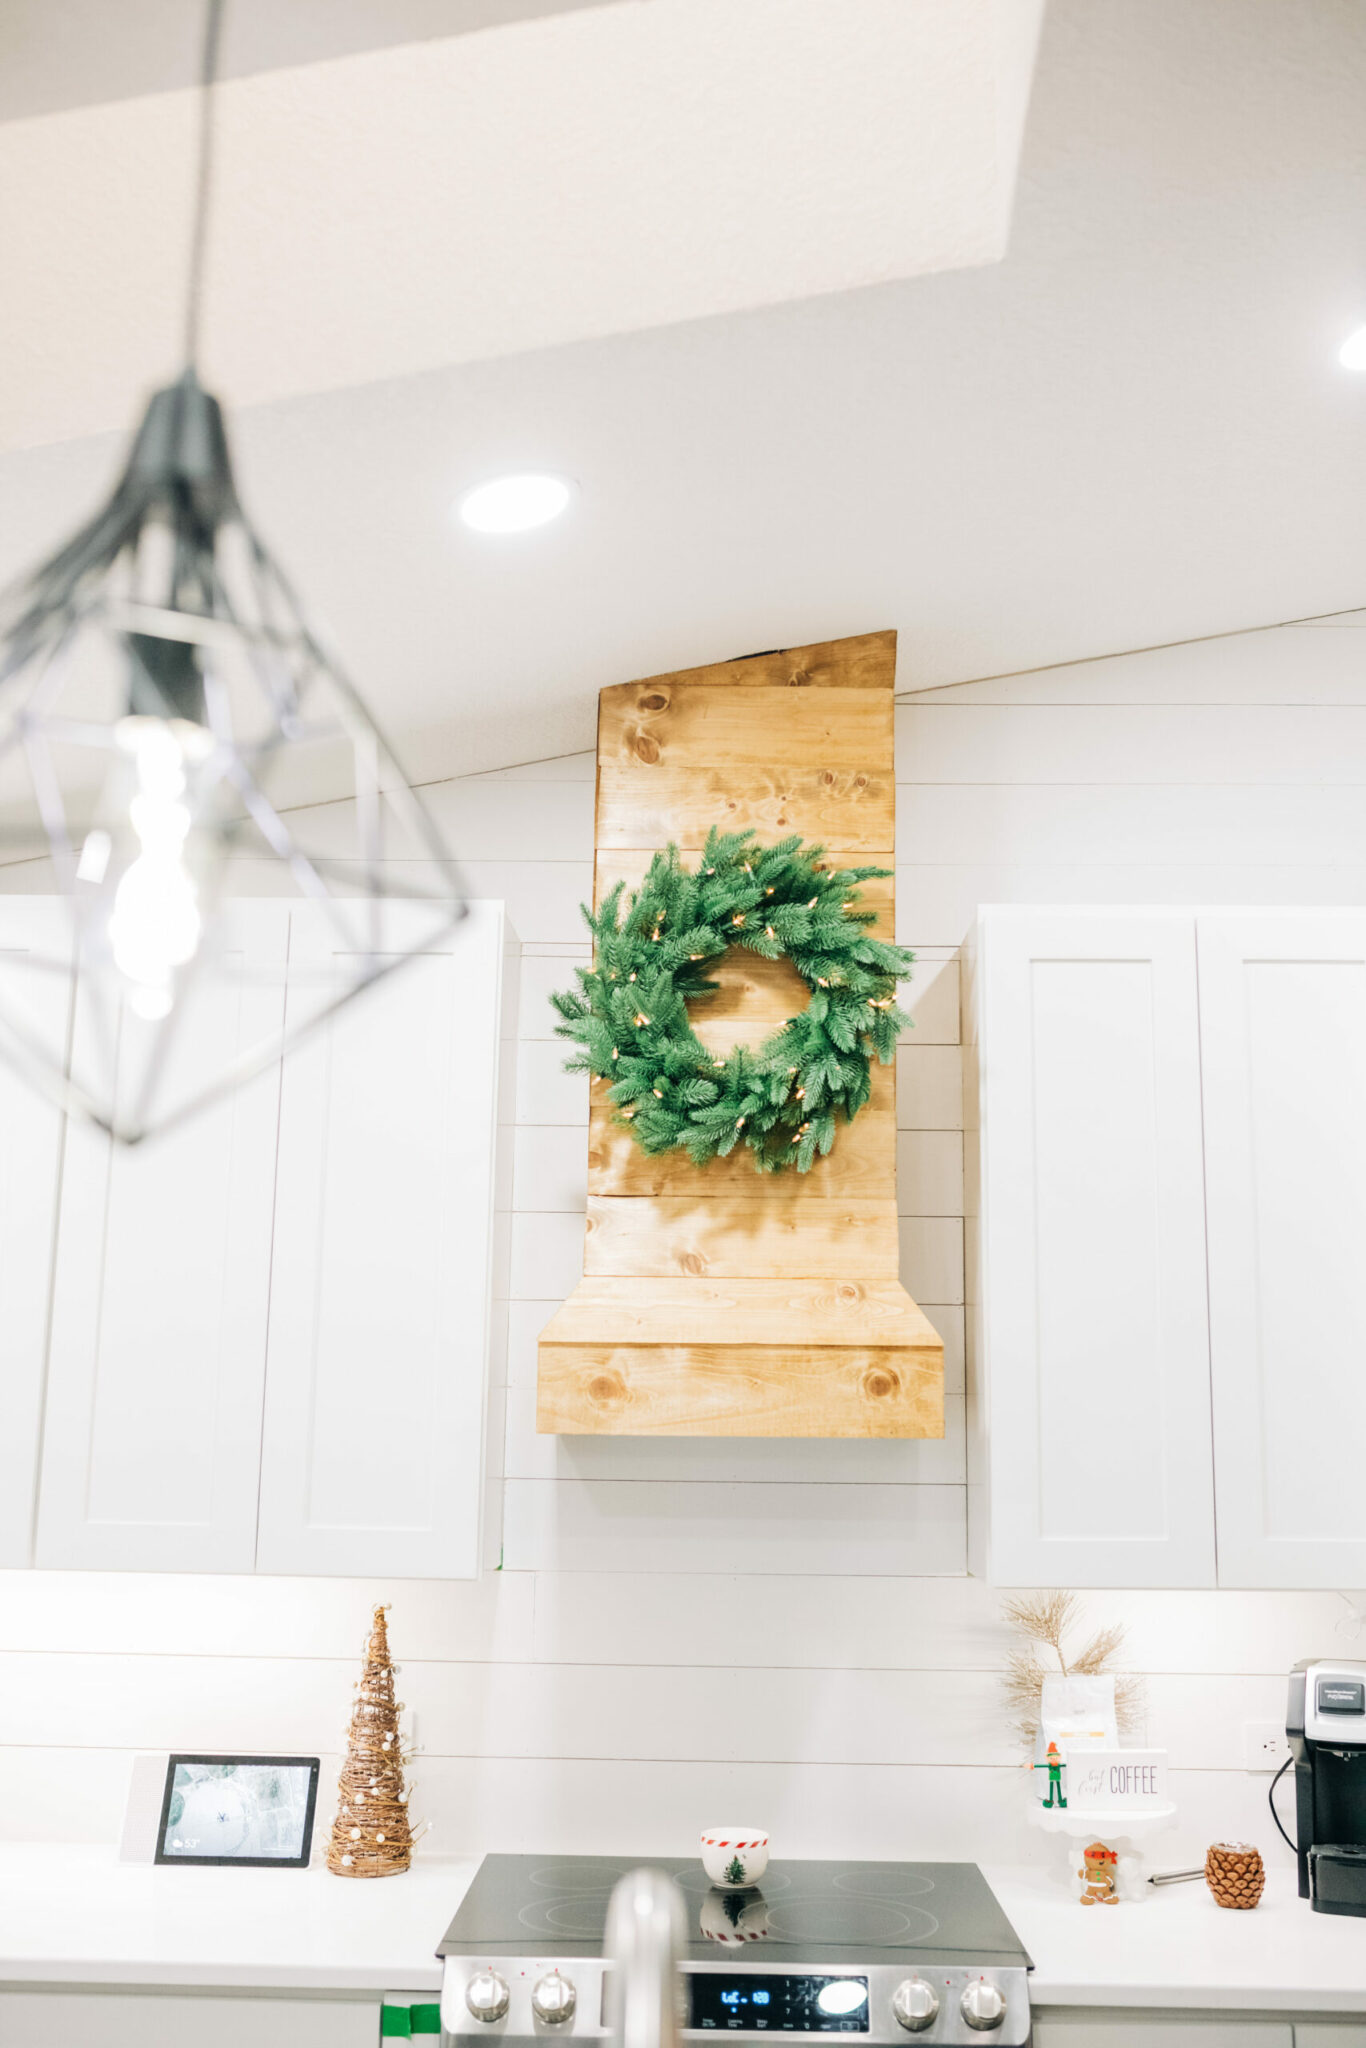 Farmhouse Kitchen Modern Christmas Decor Kitchen, Prelit wreath from Treetopia hung with 3M hooks on hood exhaust